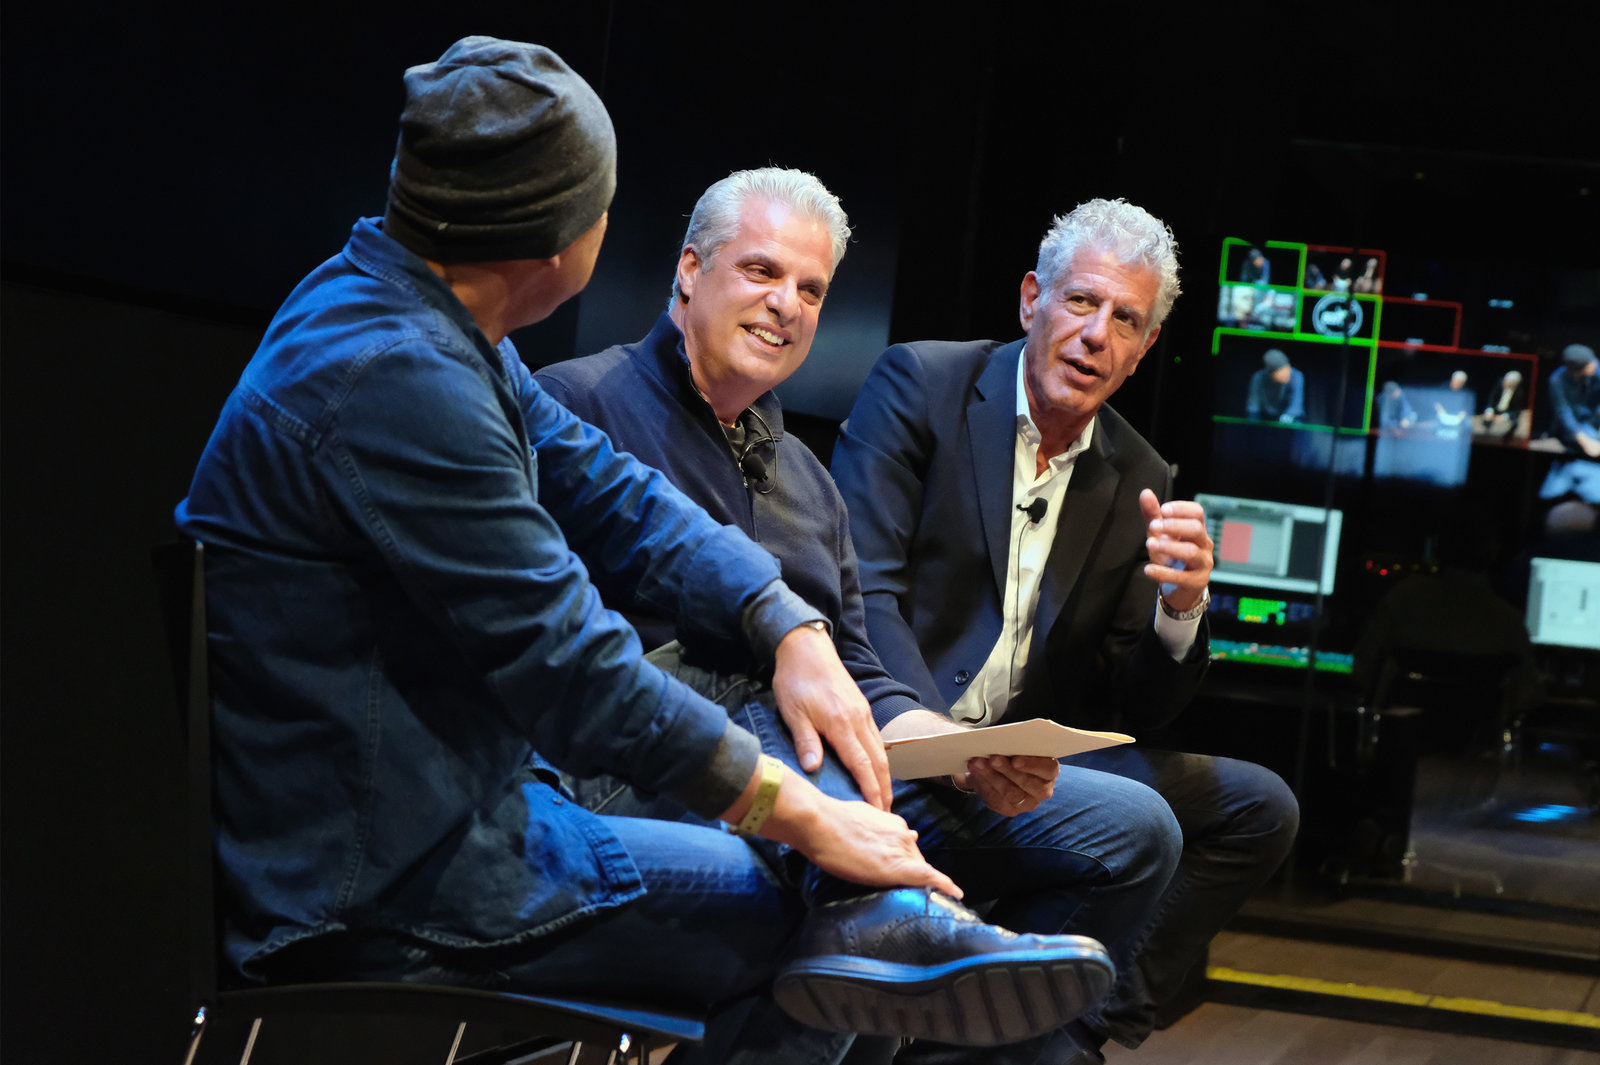 Chefs Masa Takayama (left), Eric Ripert and Anthony Bourdain during a screening of Anthony Bourdain: Parts Unknown in 2016 in New York City.